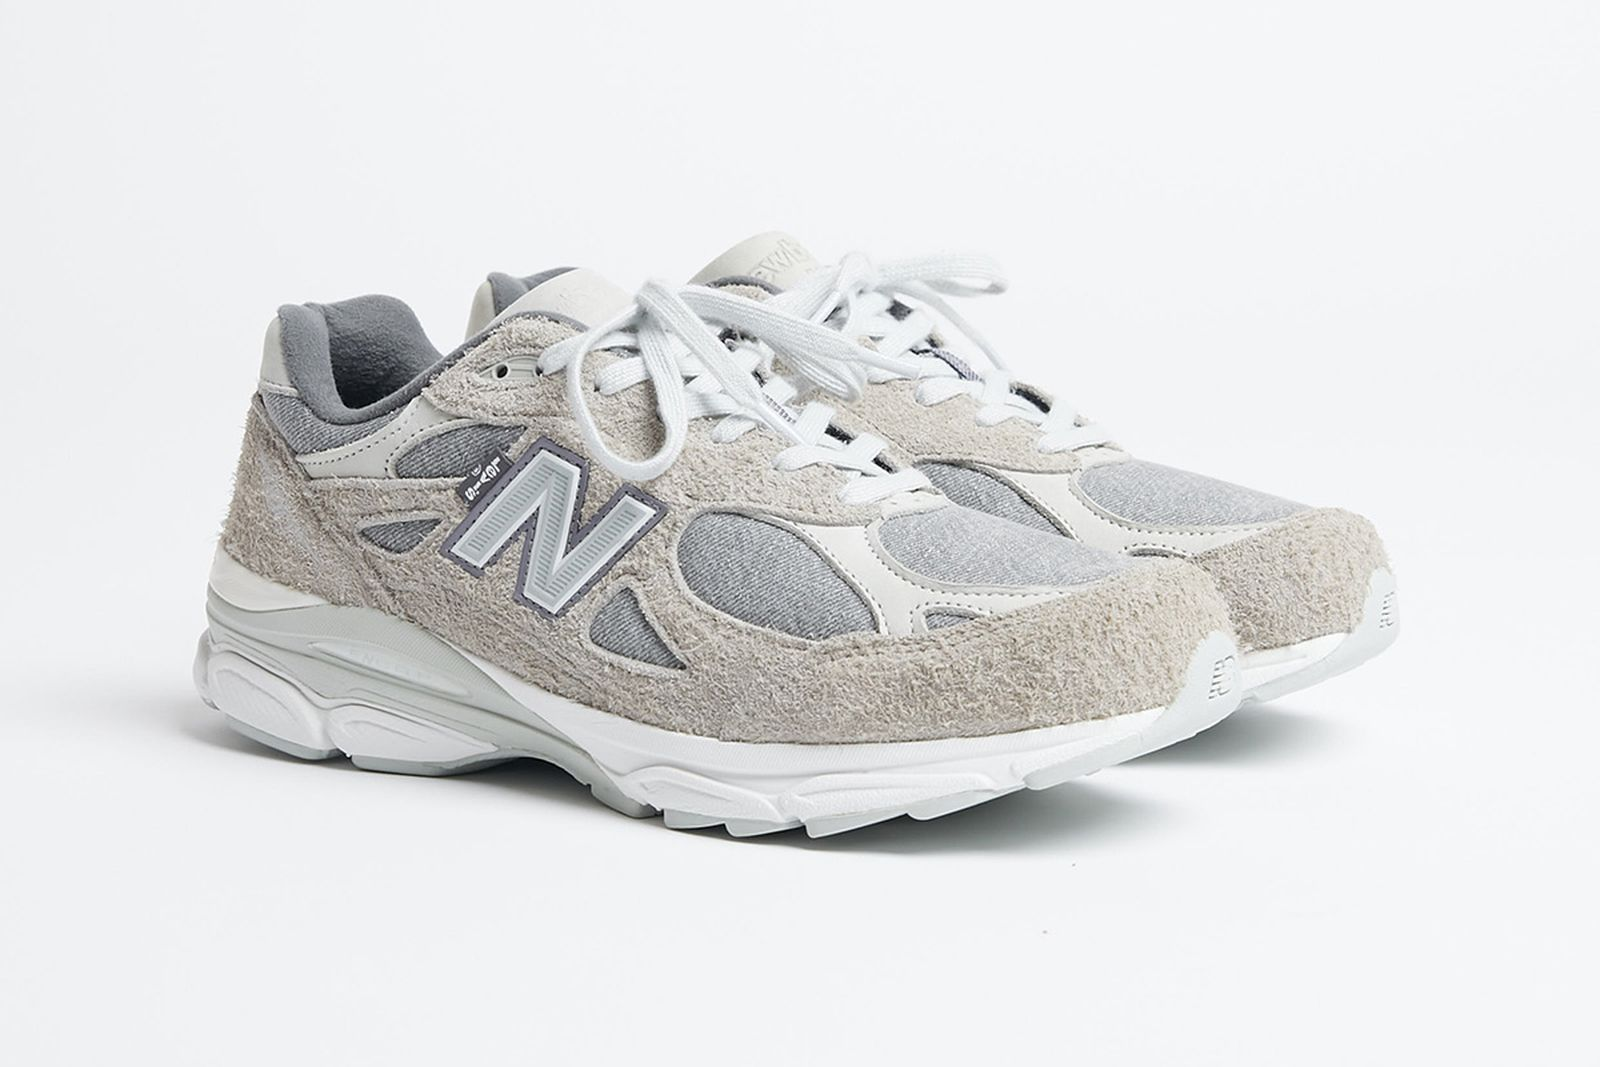 levis-new-balance-990v3-release-date-price-04